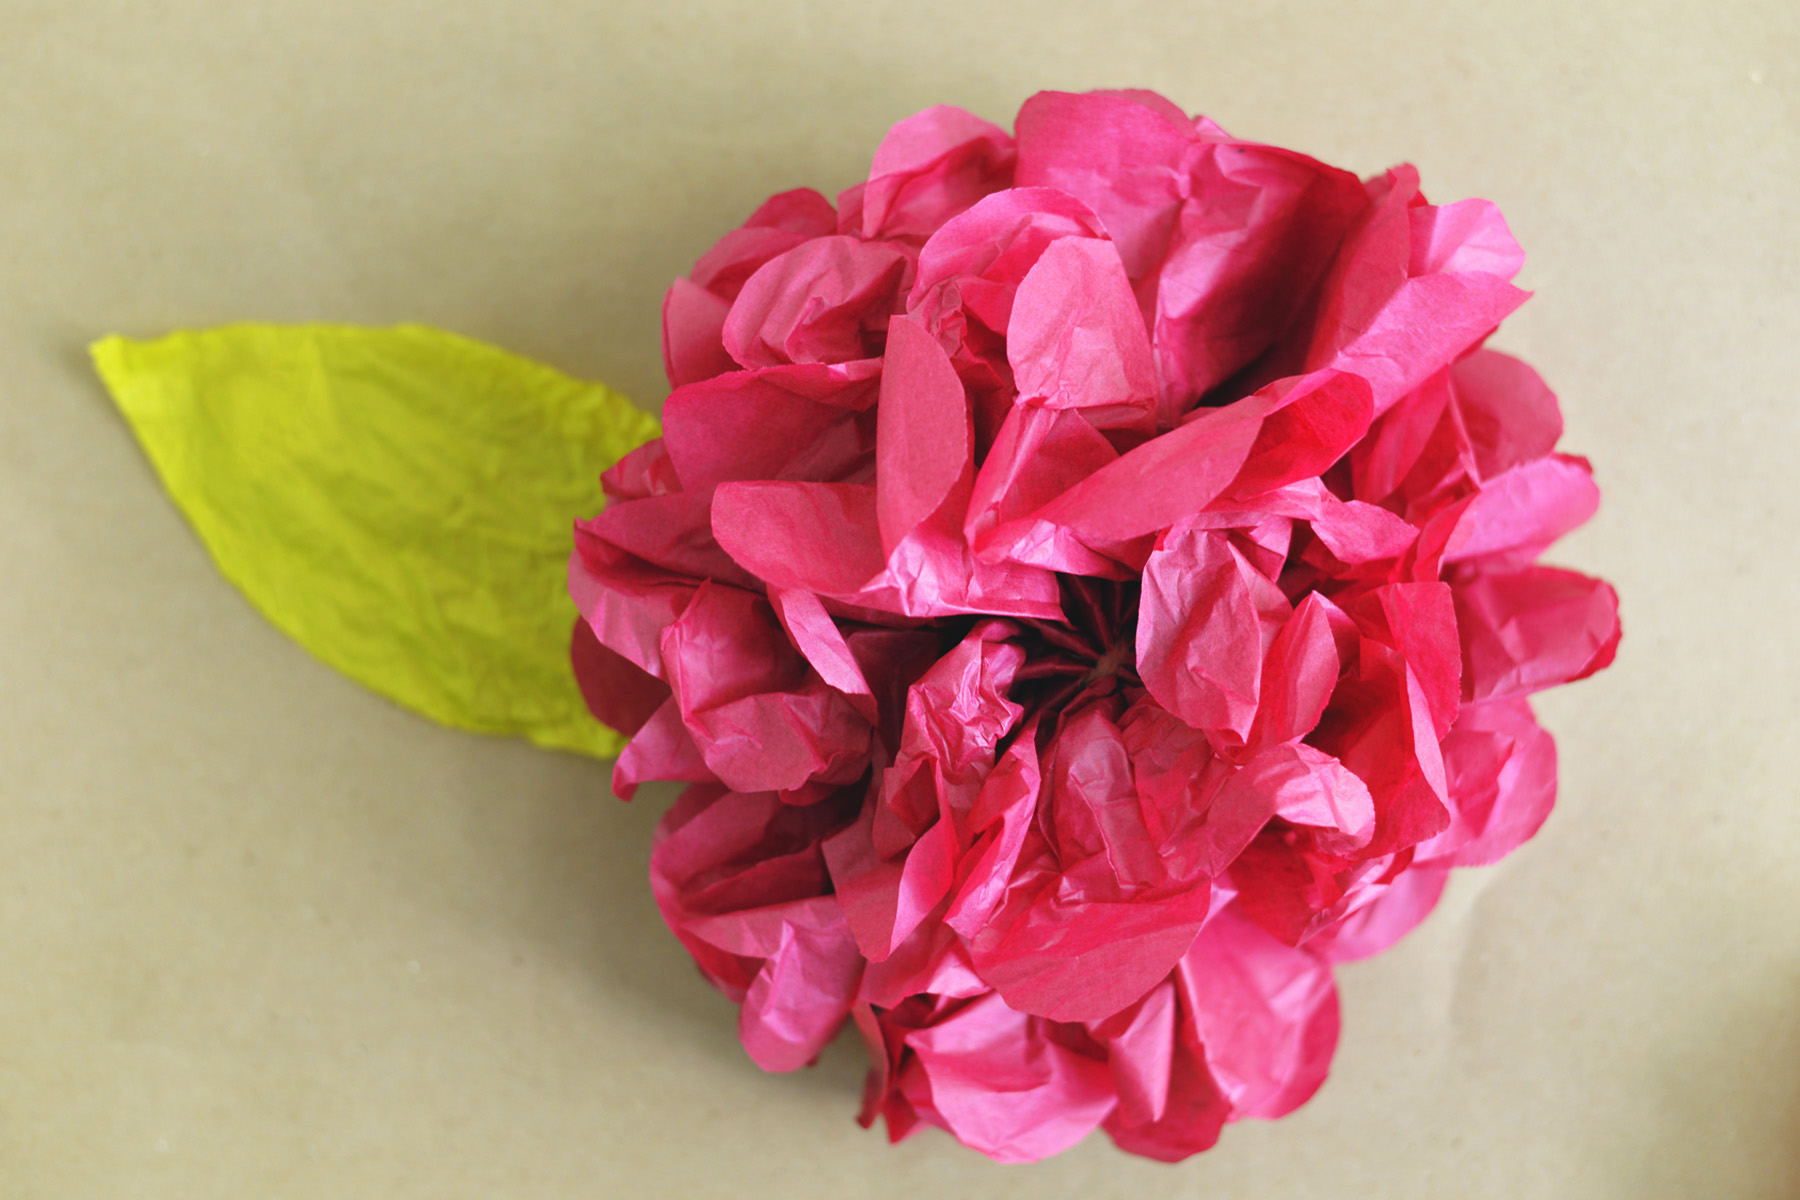 Tissue paper flower backdrop diy tissue paper flower backdrop mightylinksfo Gallery